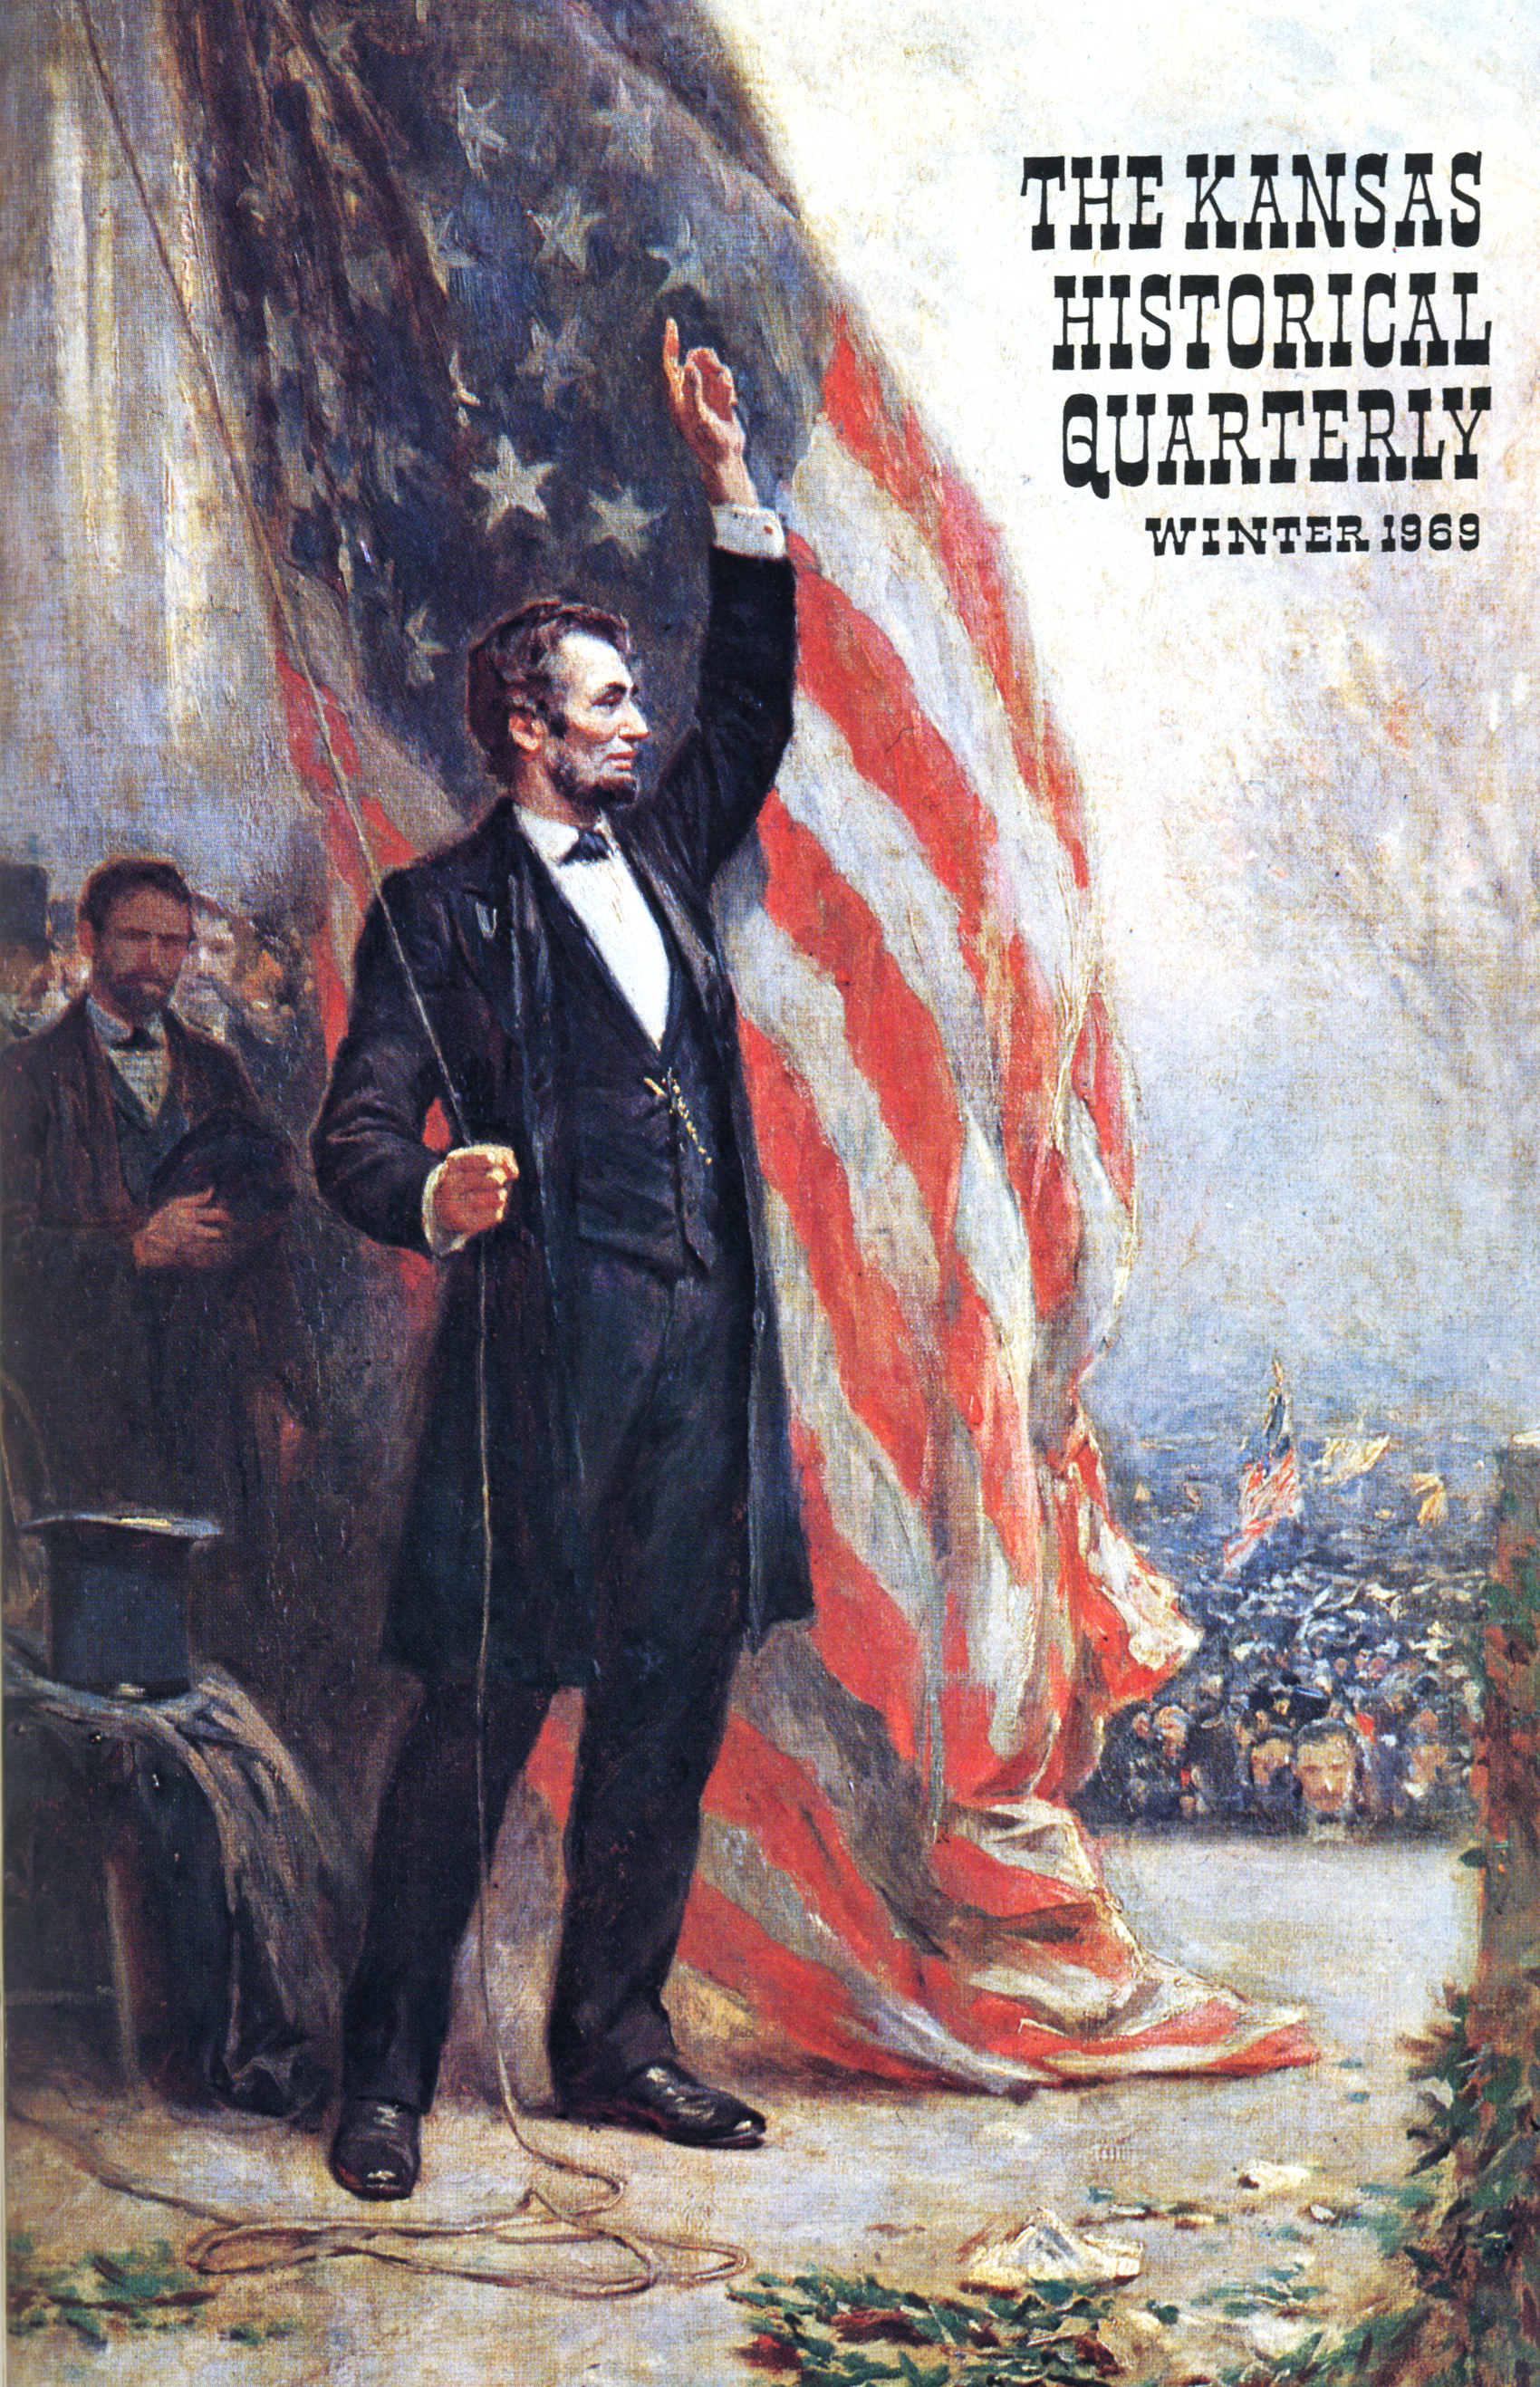 Kansas Historical Quarterly, Winter 1969